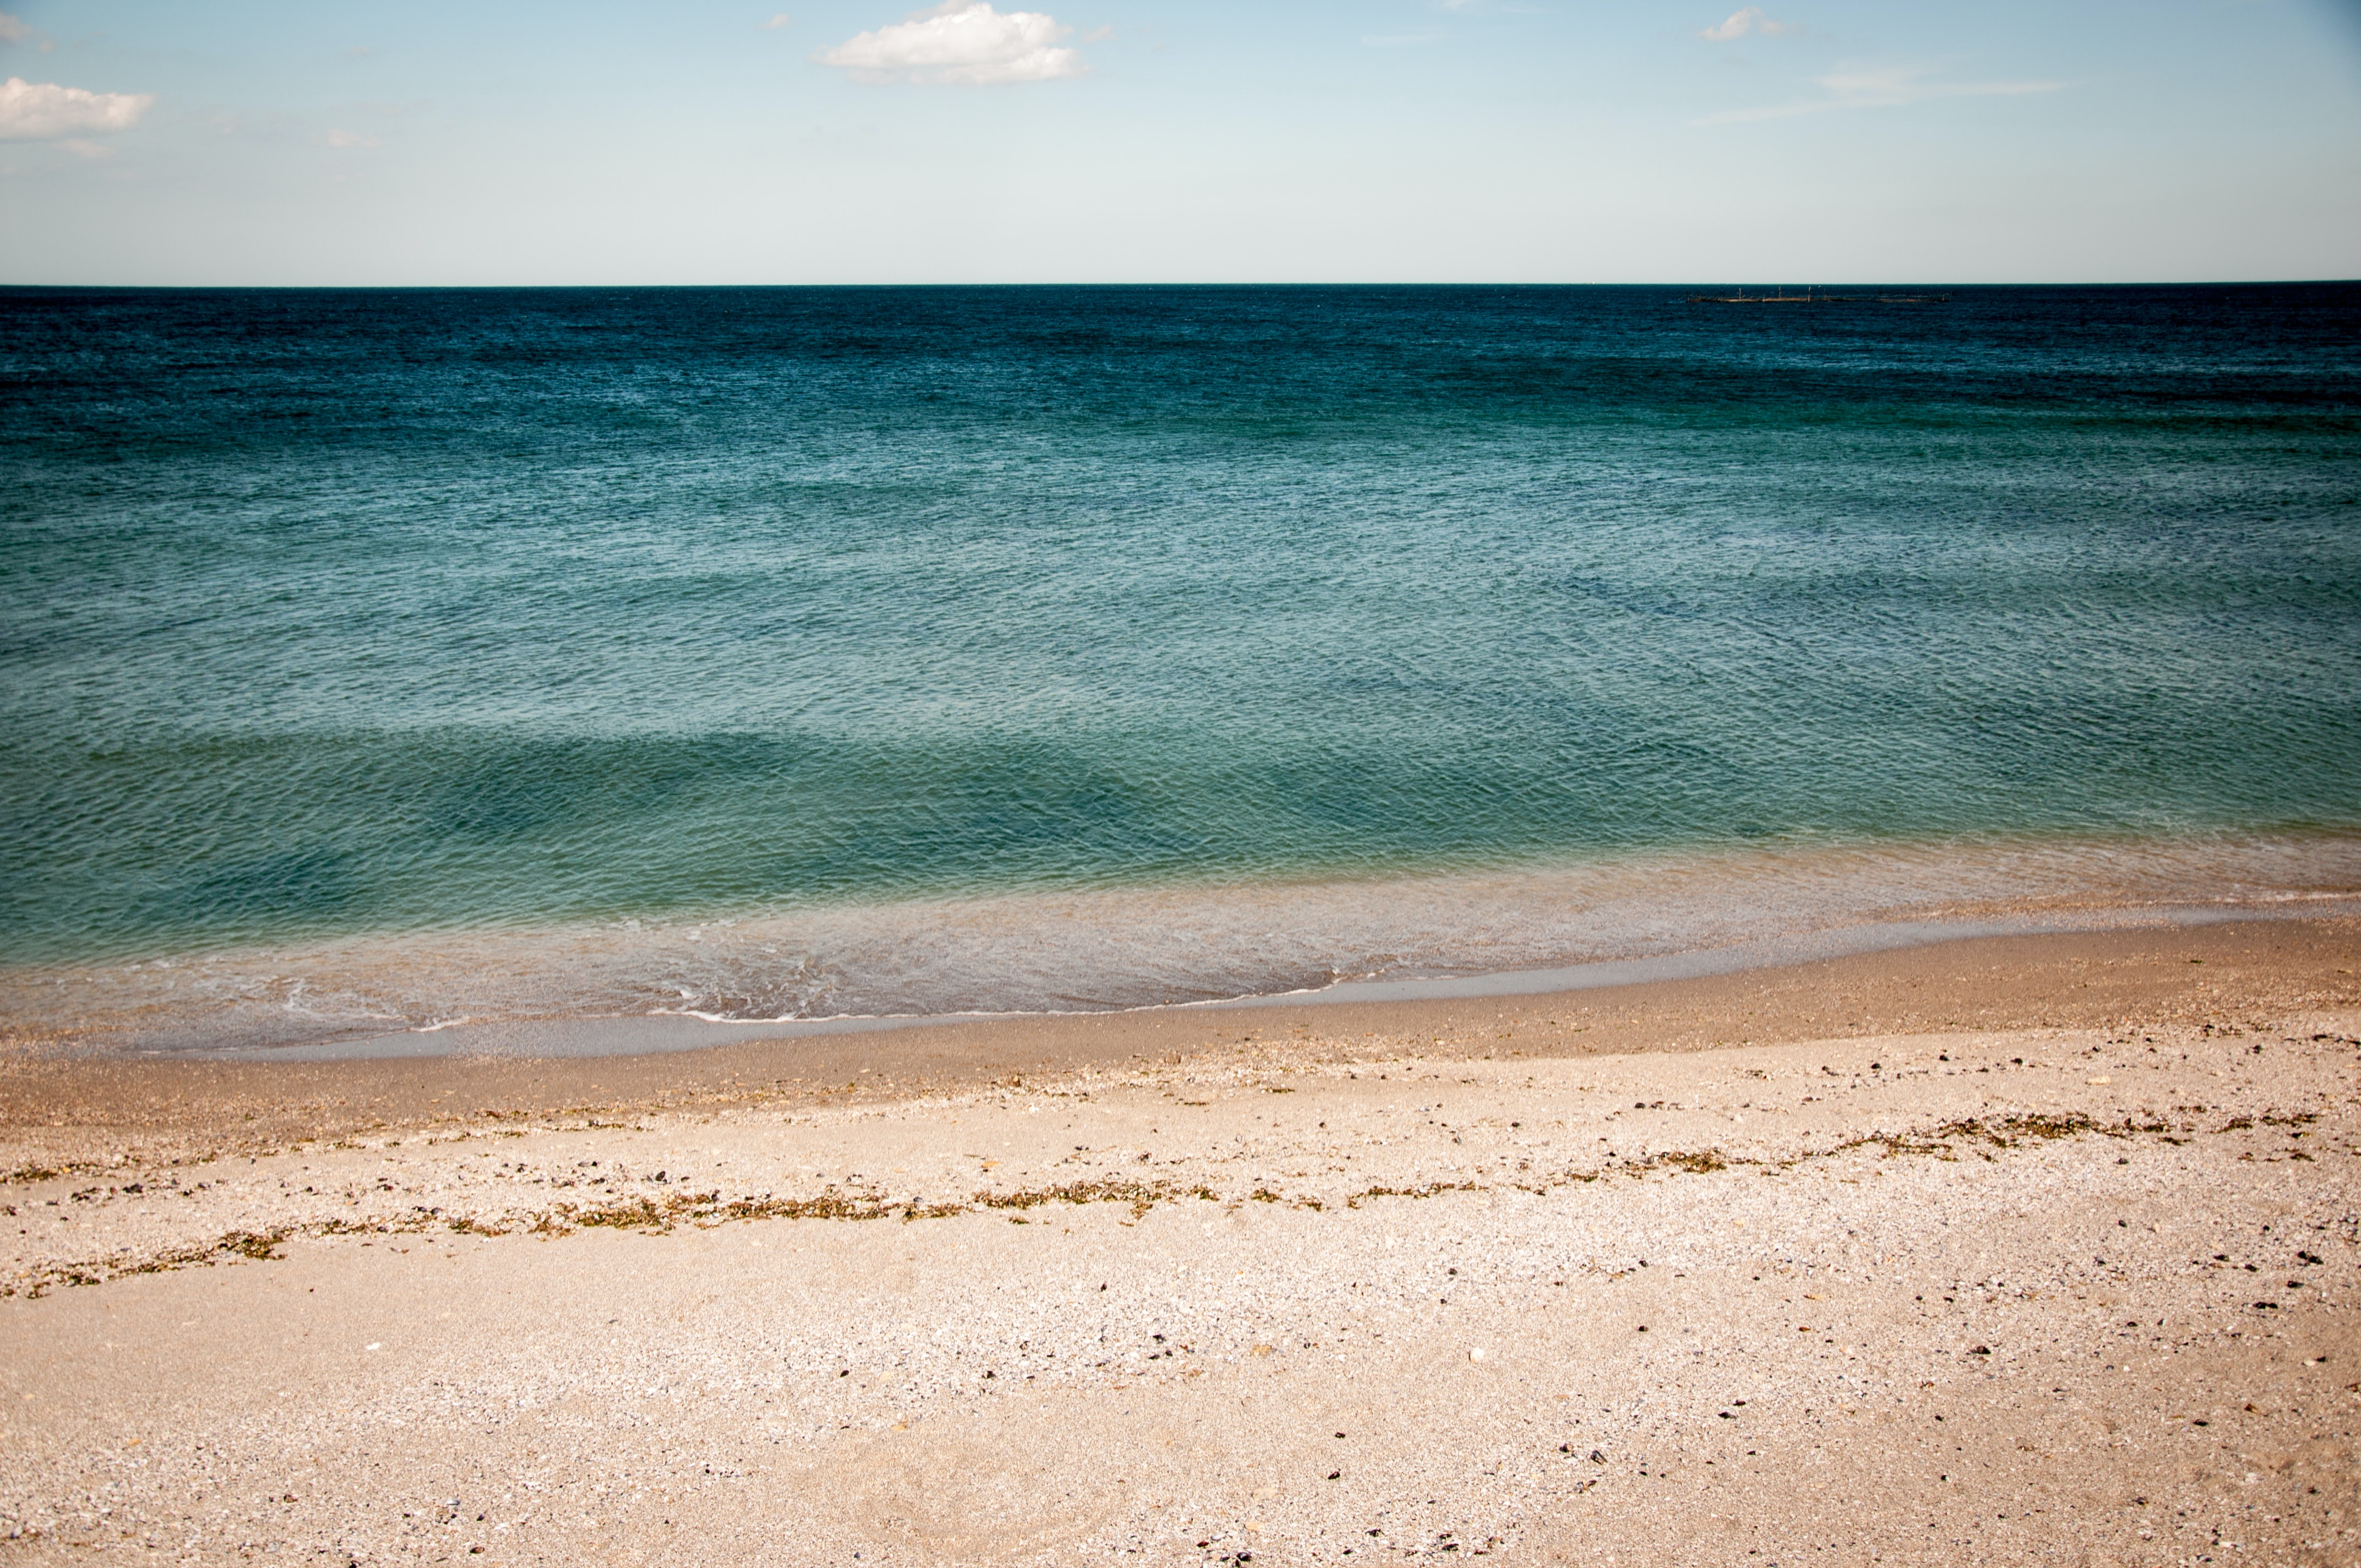 complete beach view of the shore and blue inviting ocean